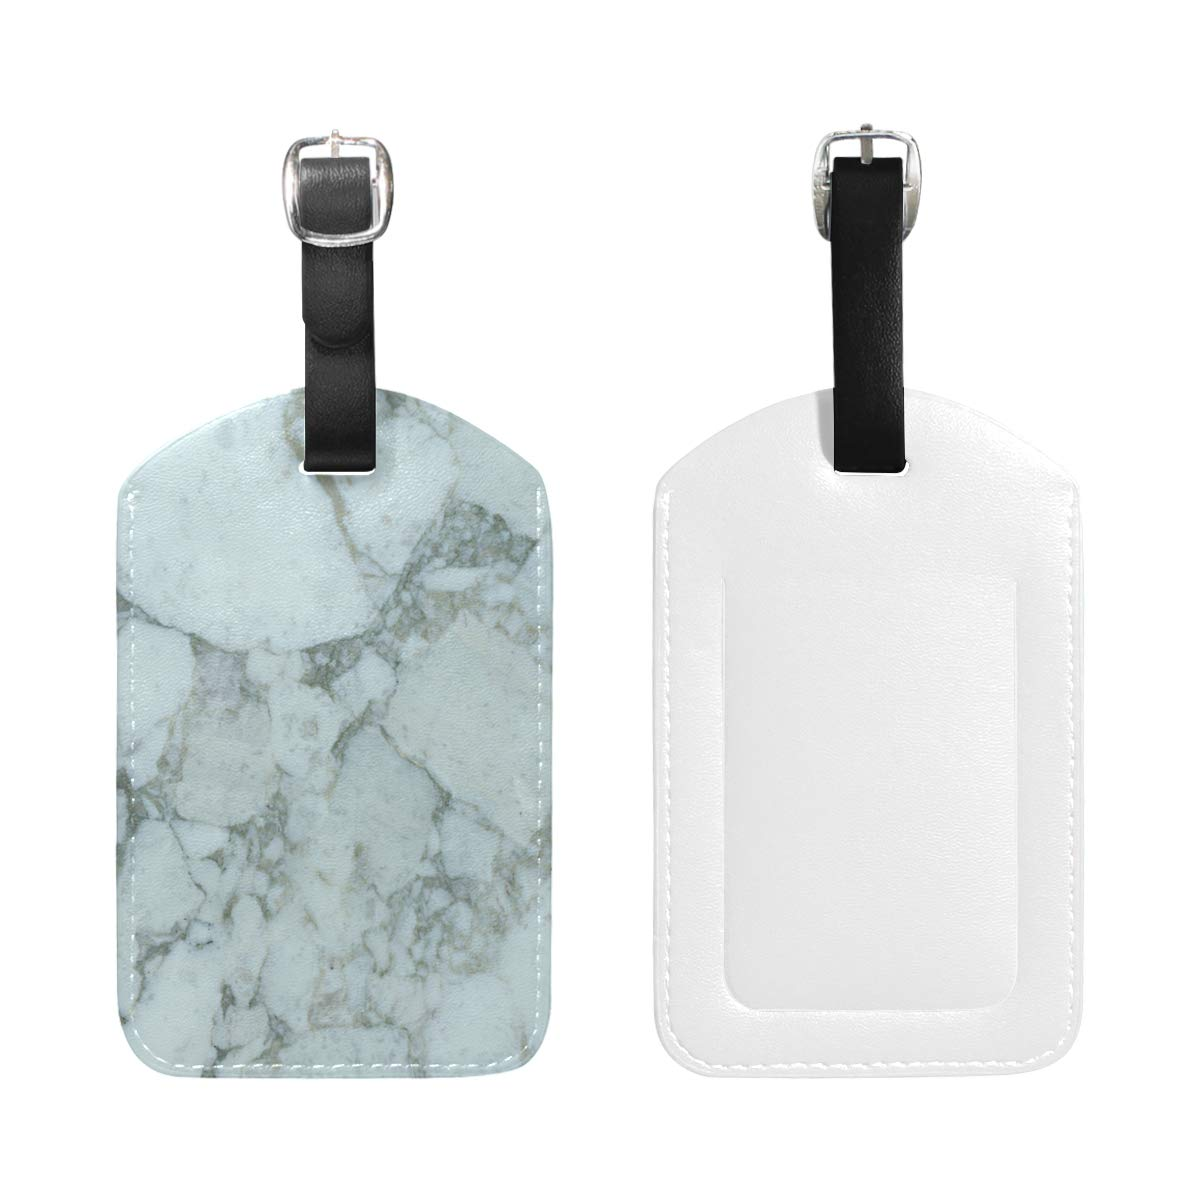 Aibileen Rose Gold Marble PU Bag Baggage Suitcase Luggage Tags Travel Accessories 1 Piece